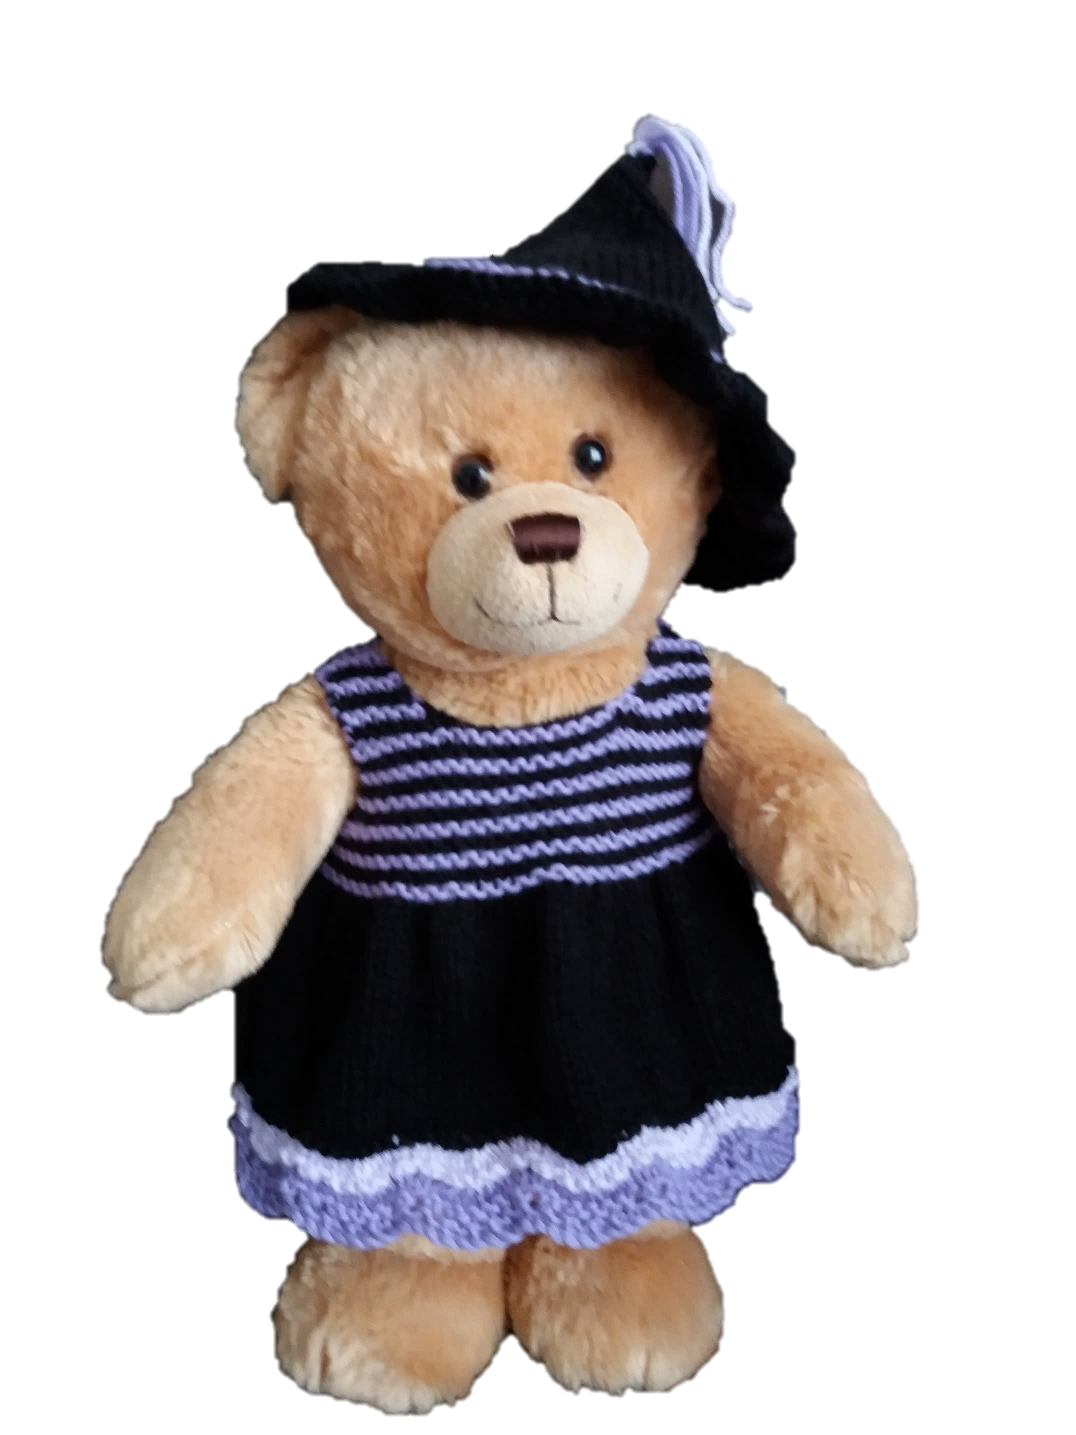 Linmary Knits: Teddy bear patterns